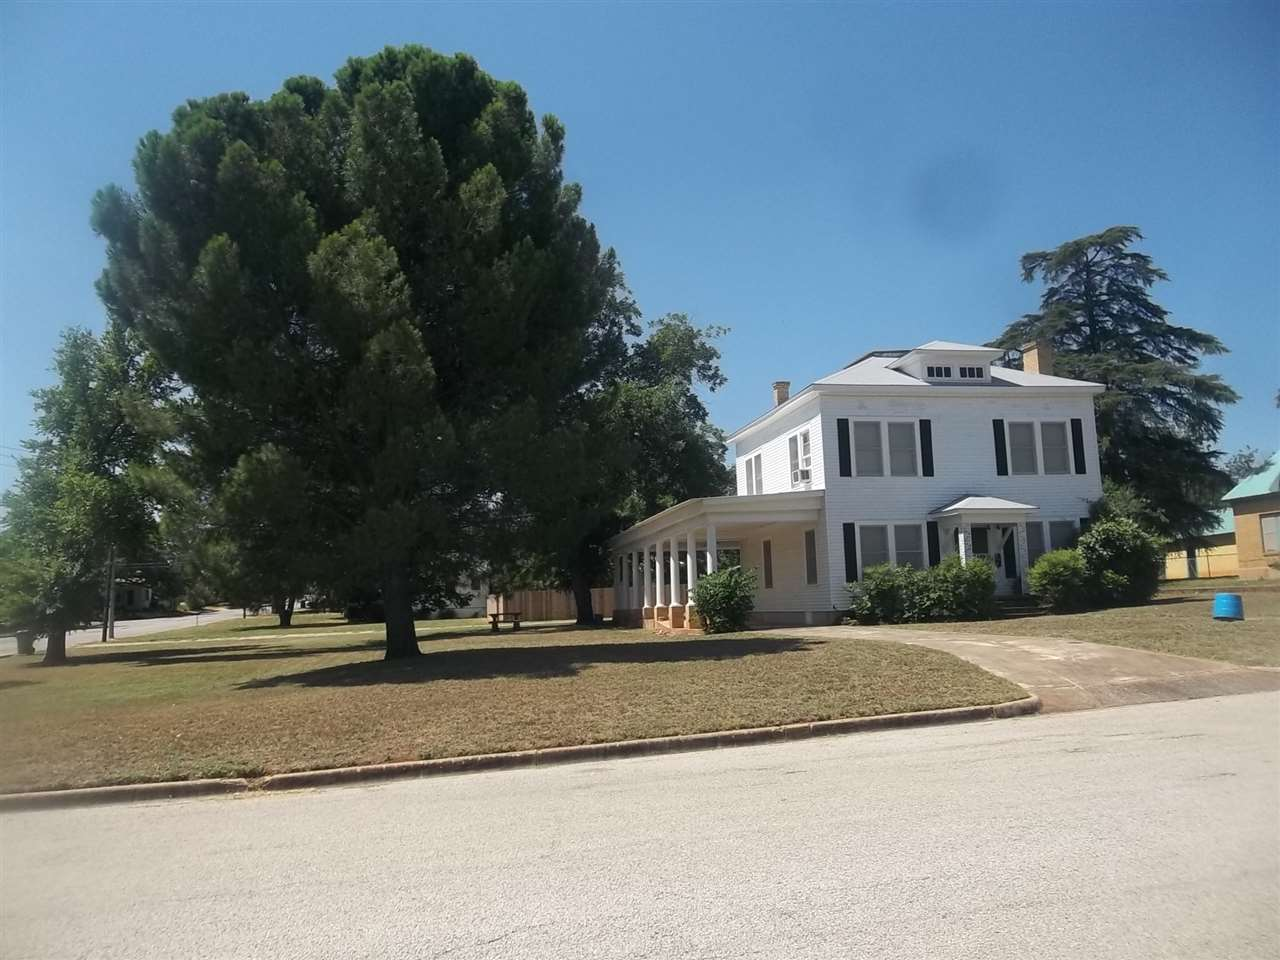 Additional photo for property listing at 404 W SANDSTONE Street  Llano, Texas 78643 Estados Unidos